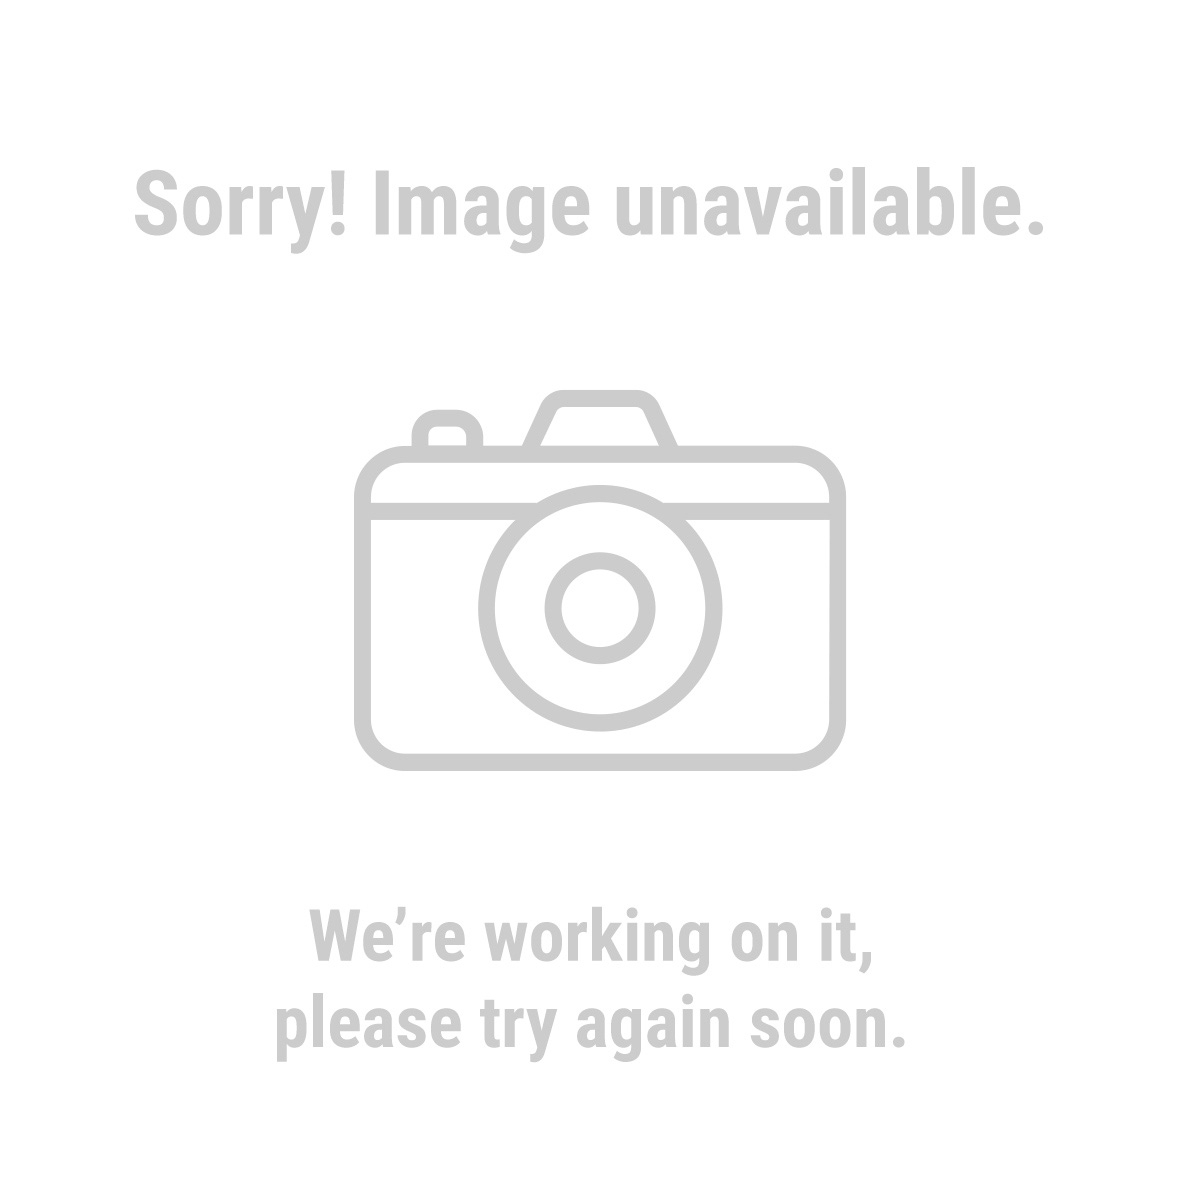 Central Forge 3999 15 Lb. Anvil